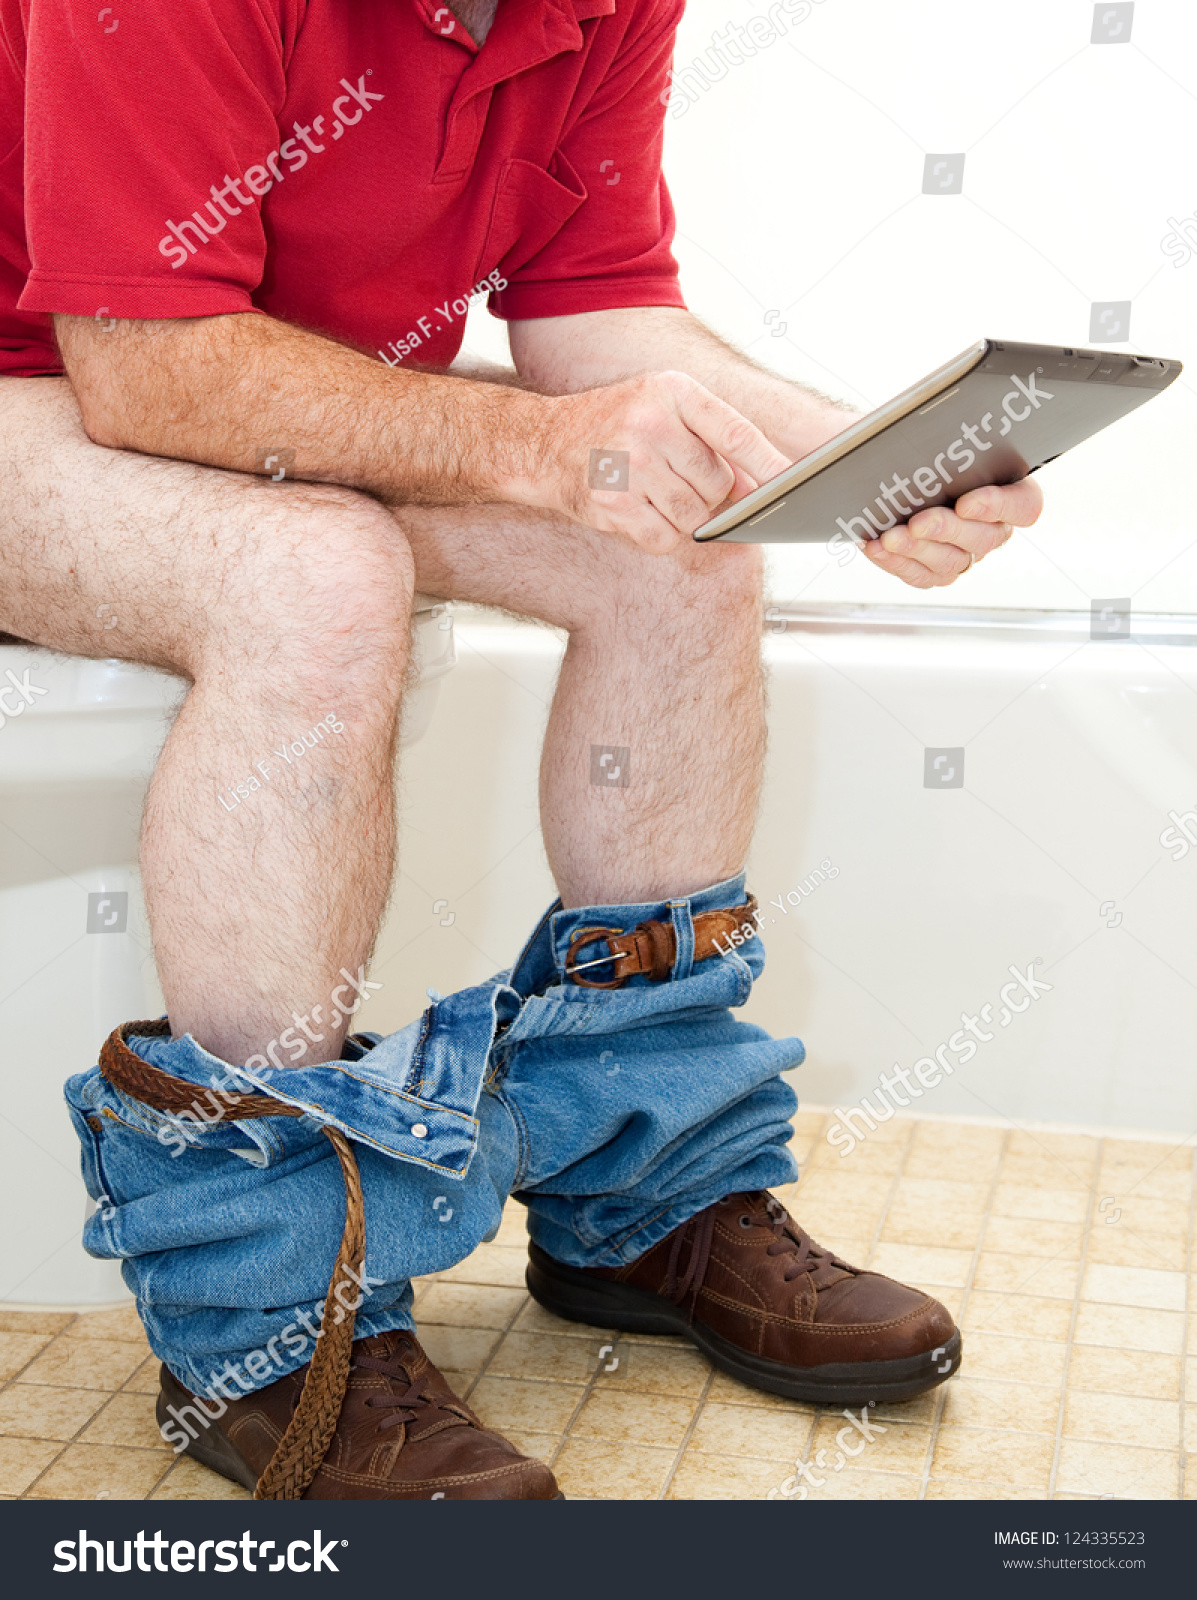 Young Man Sitting On Toilet Bowl Stock Photo - Image of